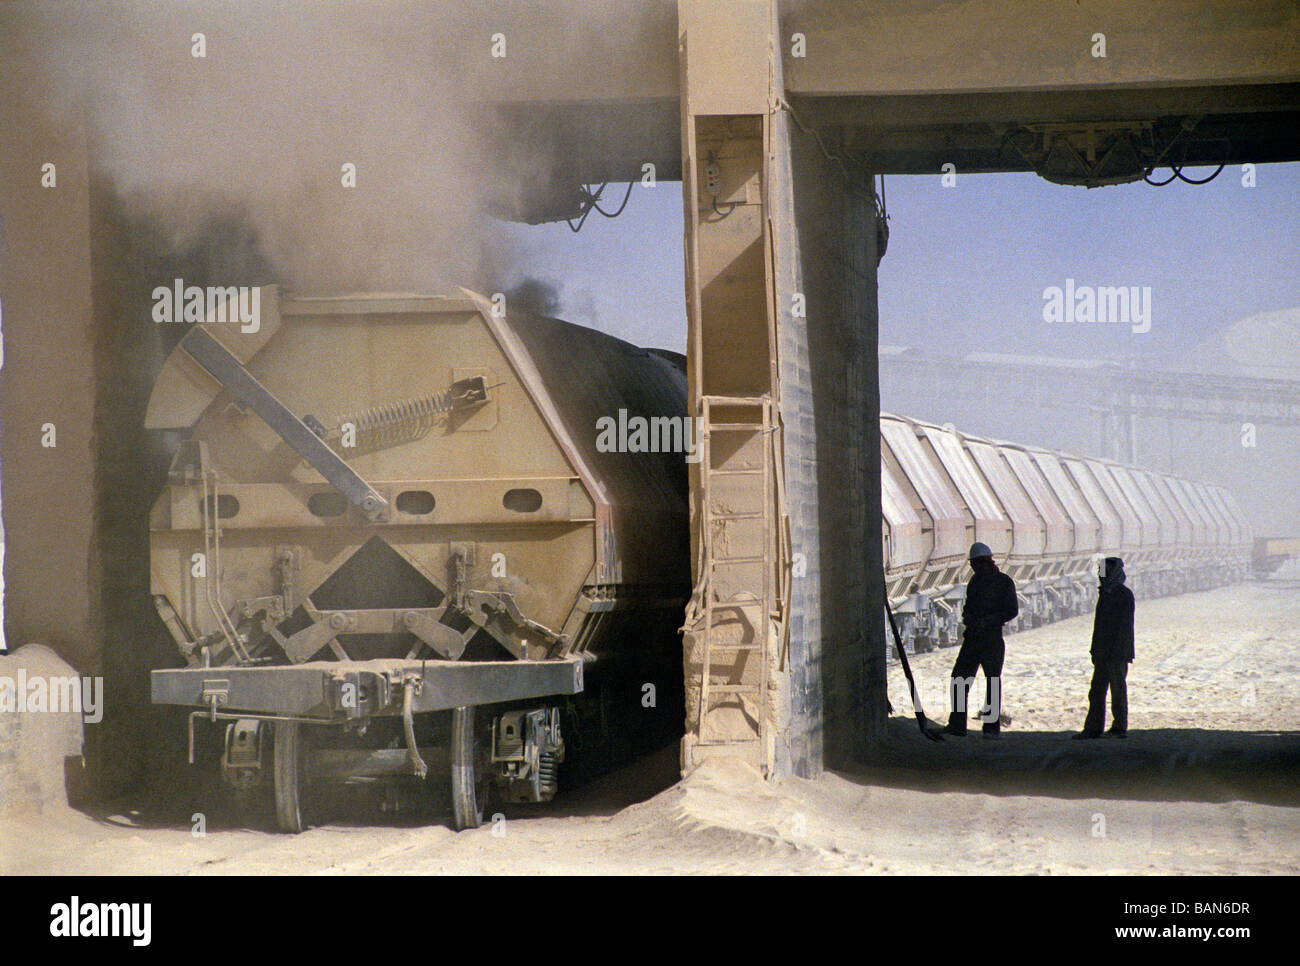 loading of freight waggons in phosphate mine area of selja tunisia - Stock Image